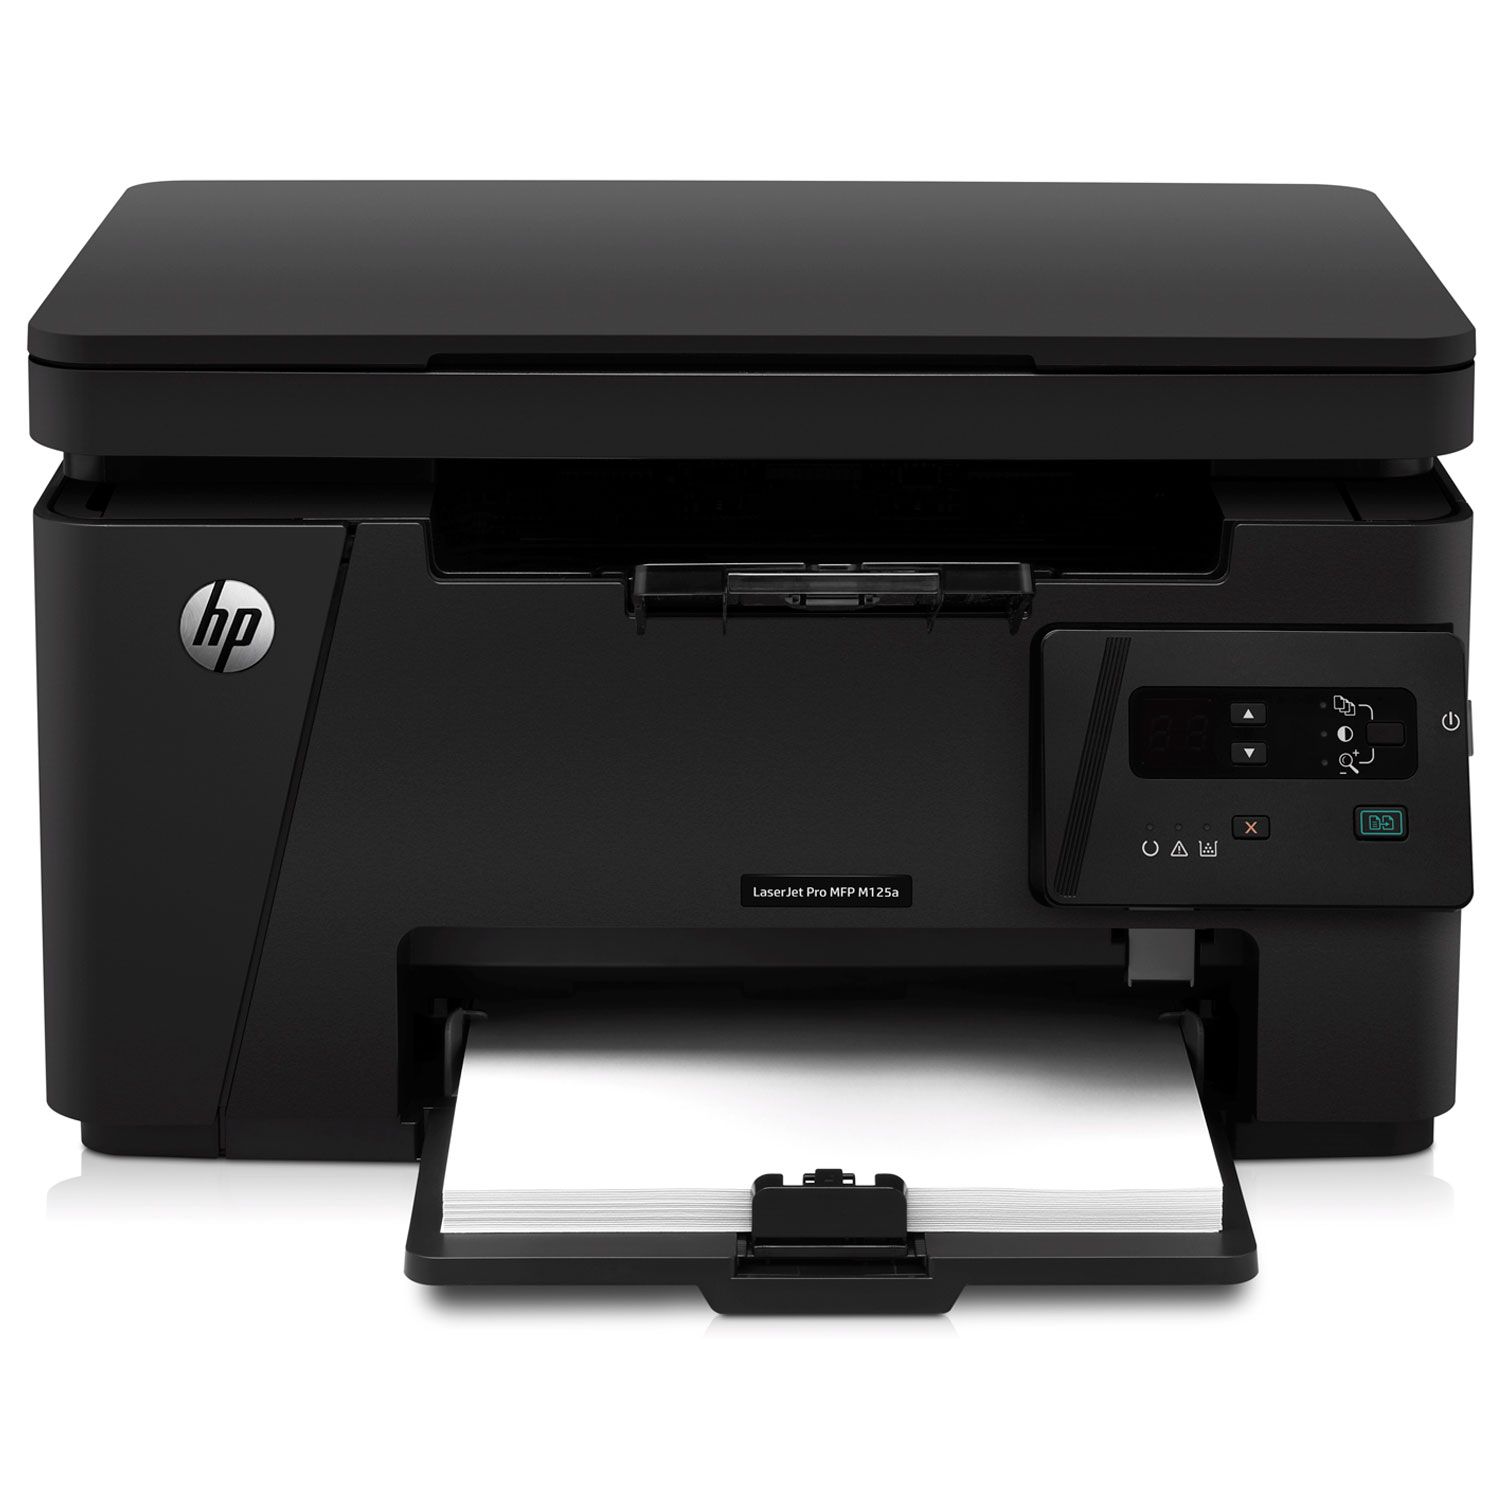 hp laserjet pro mfp m125a imprimante multifonction hp. Black Bedroom Furniture Sets. Home Design Ideas